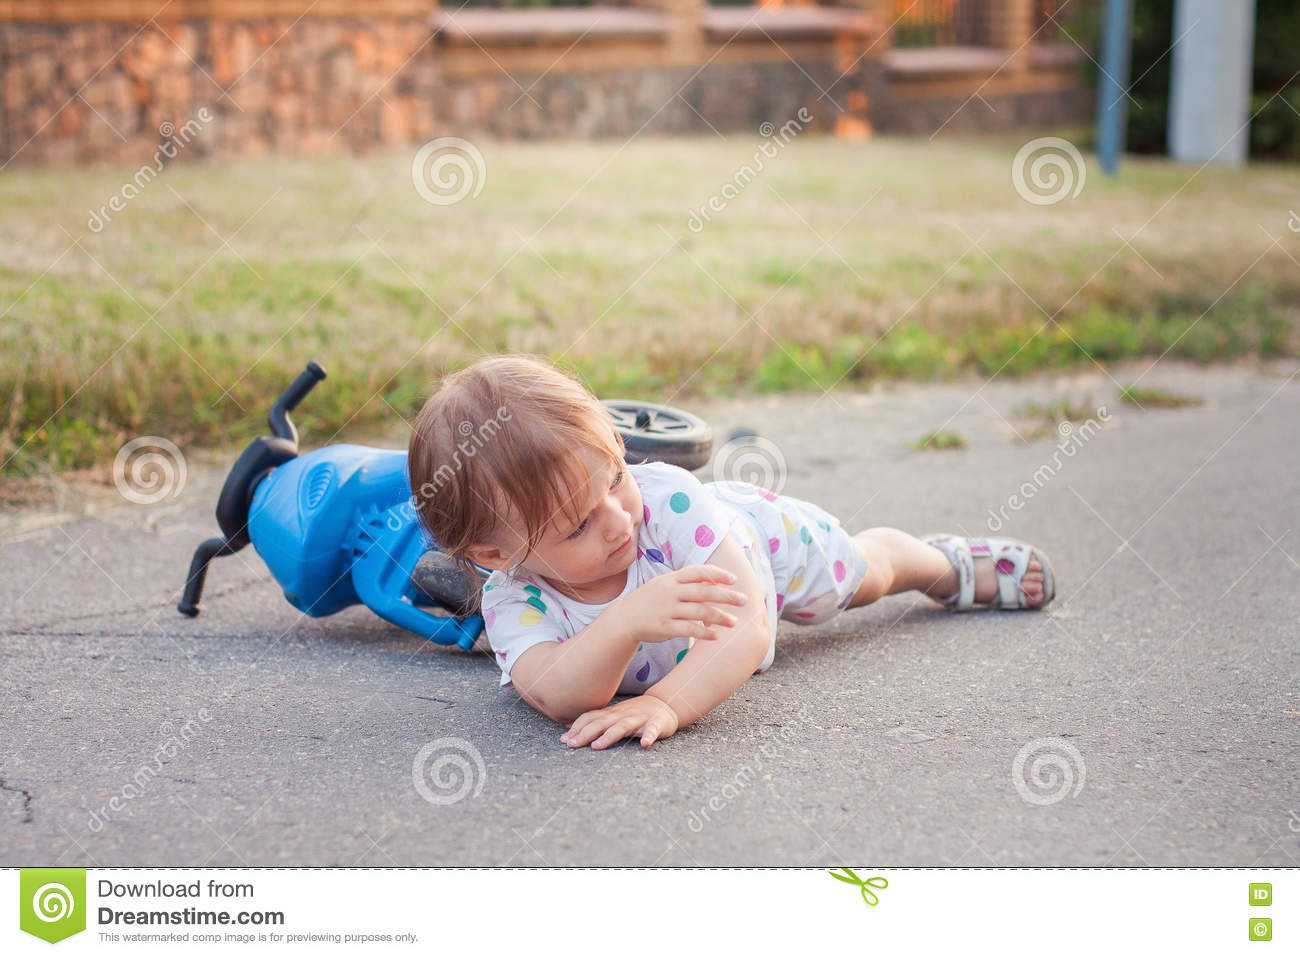 Kid Fell Down Of Her Bike Stock Photo - Image: 74856440